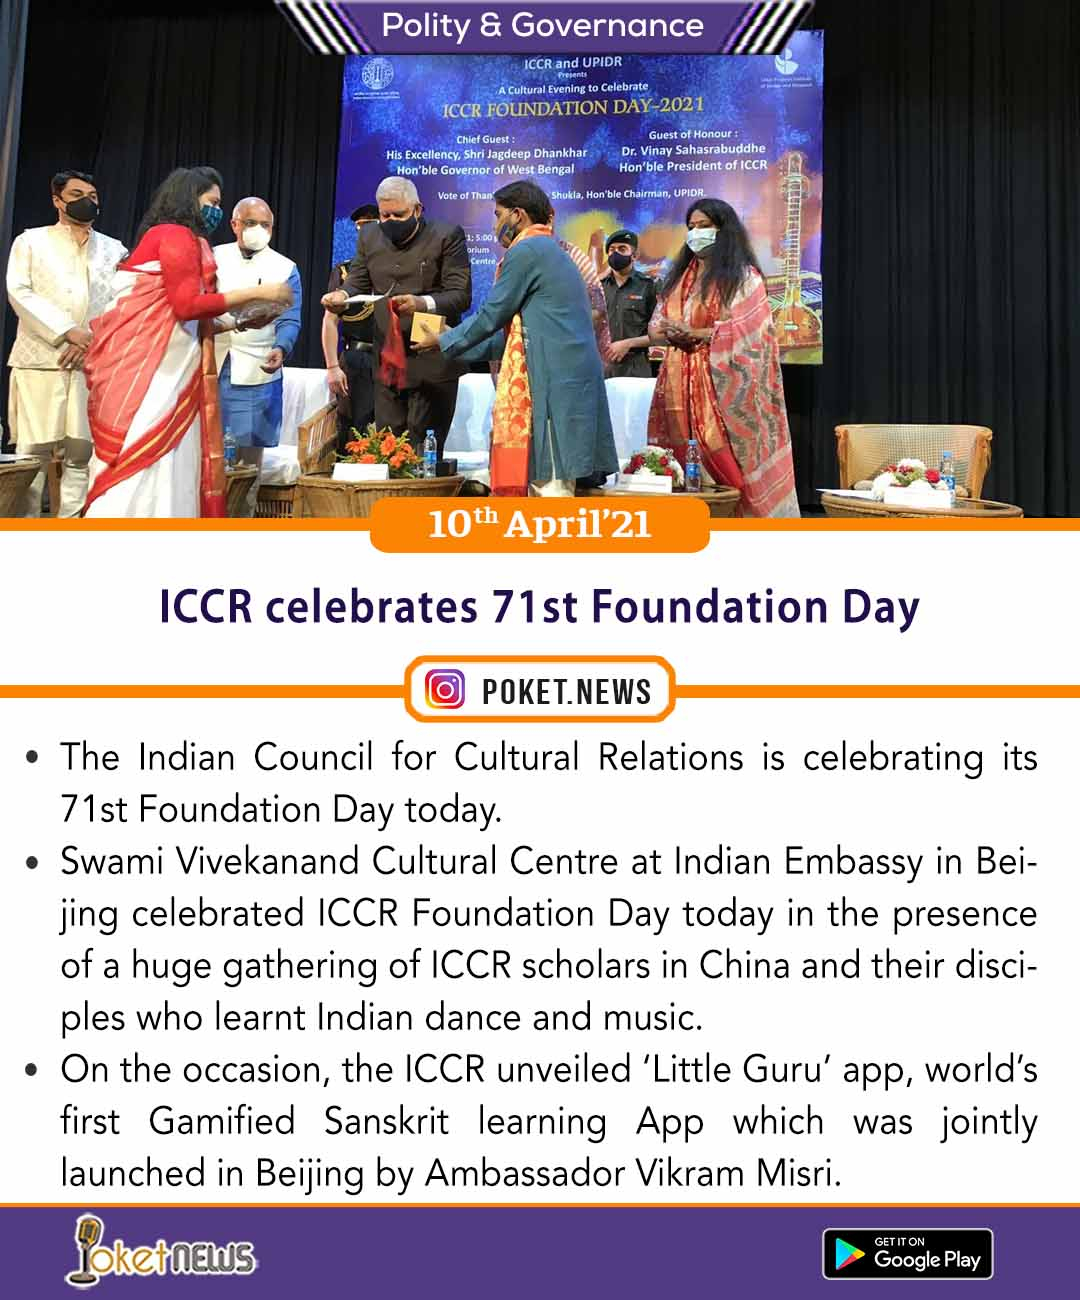 ICCR celebrates 71st Foundation Day